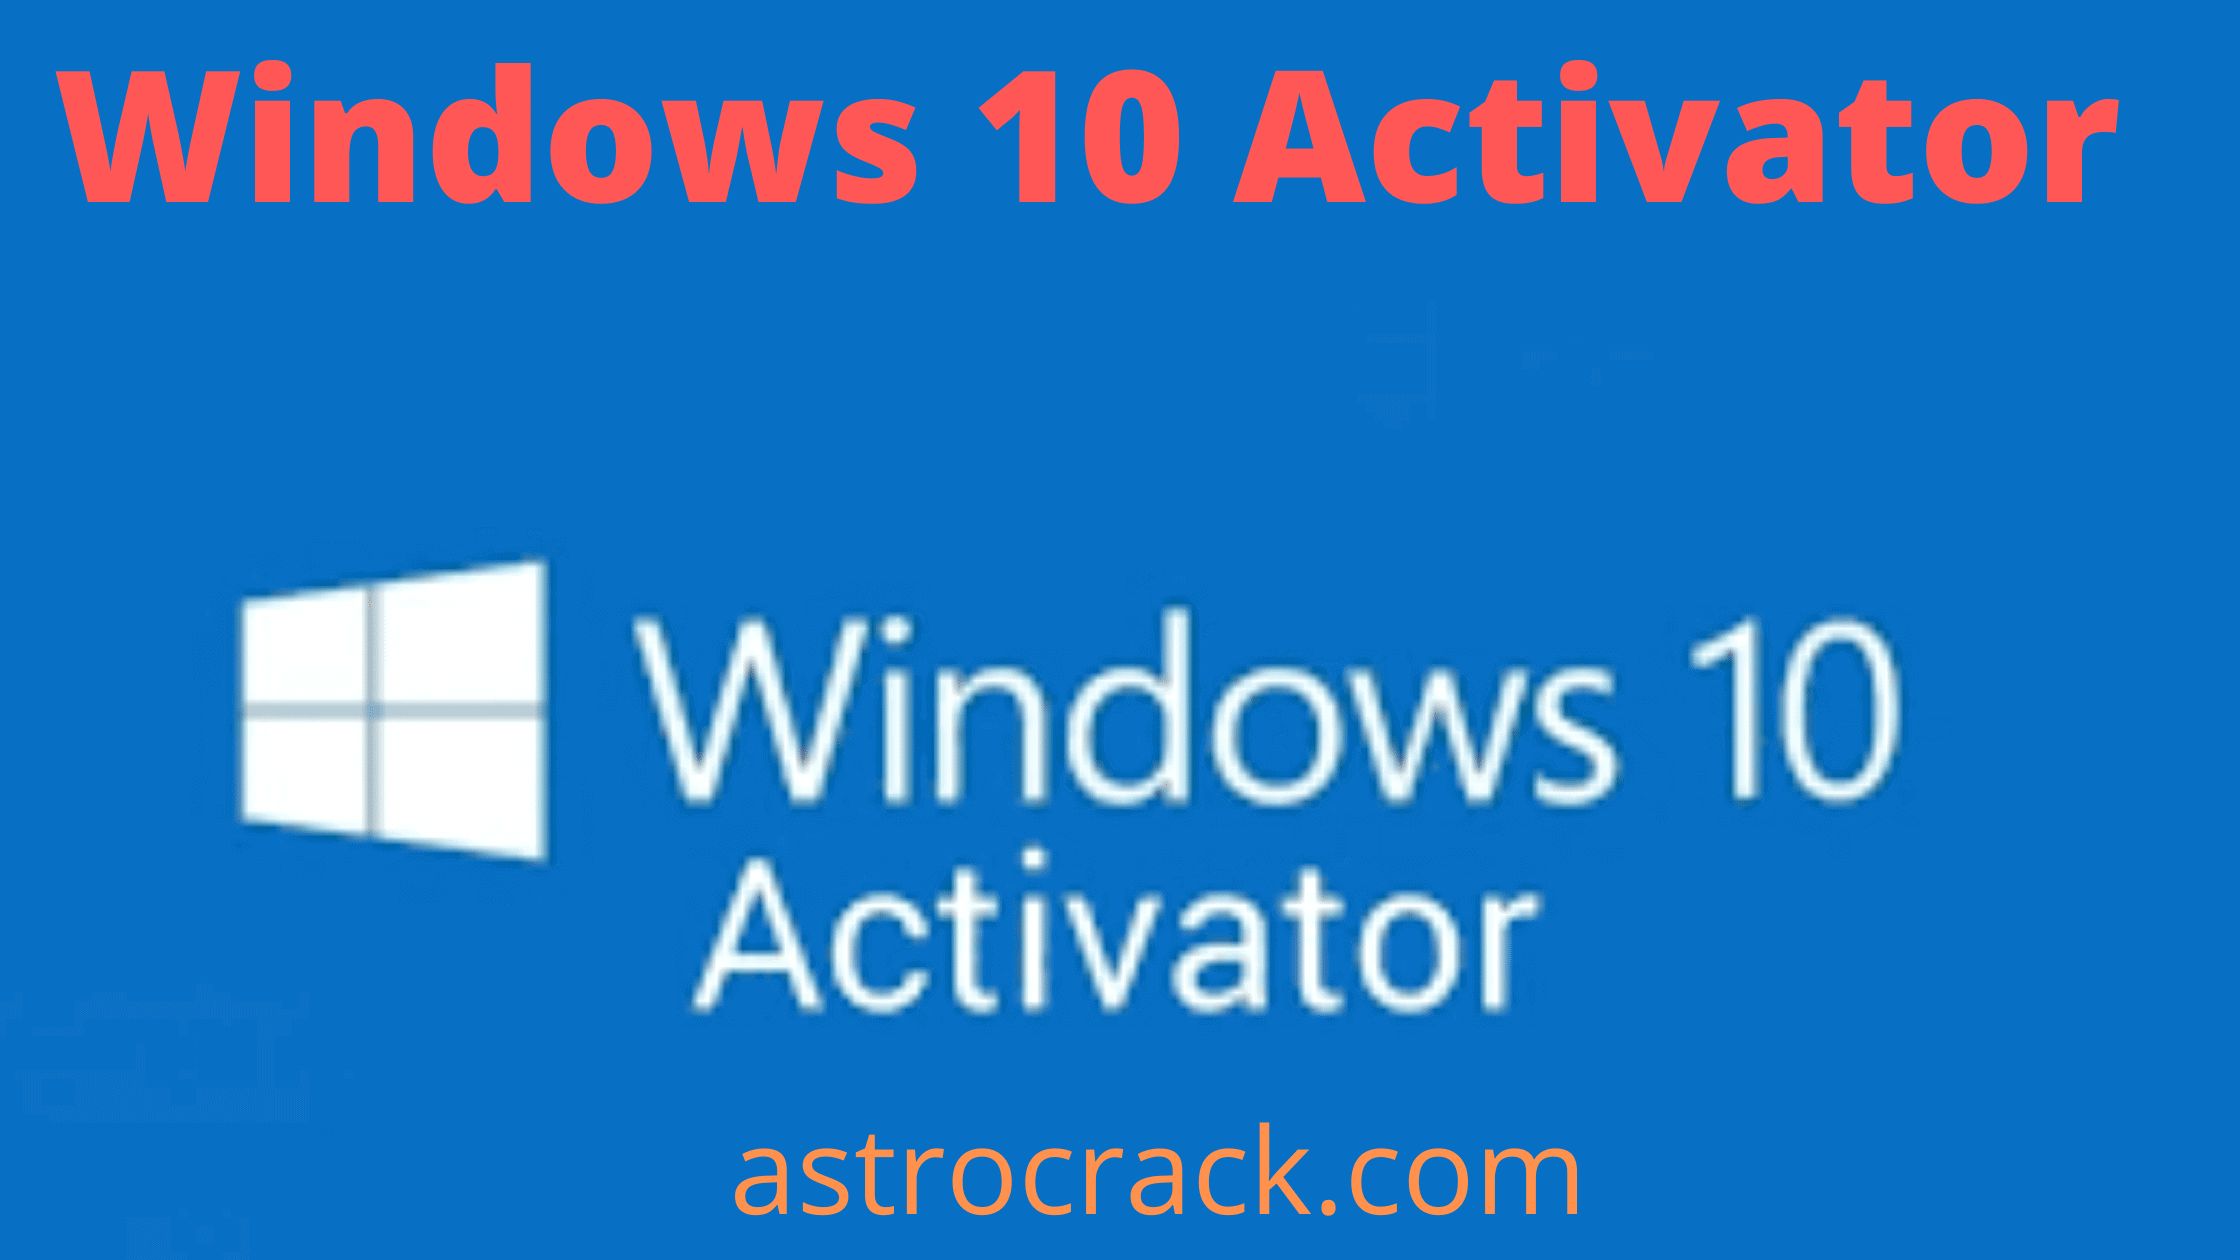 Windows 10 Activator, Windows 10 Activator crack, Windows 10 Activator crack download, Windows 10 Activator Crack patched, LanSweeper download